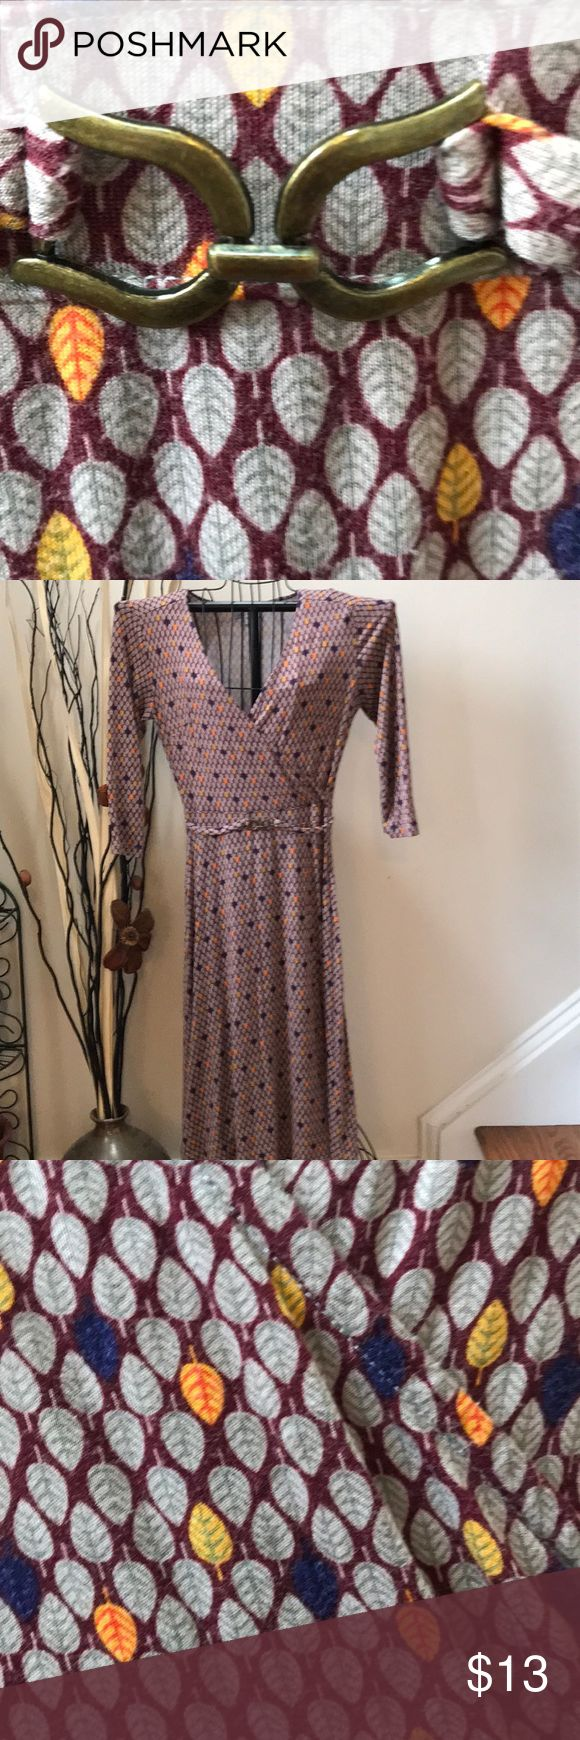 """Gorgeous Downeast dress This beautiful dress is in good condition! It's has a beautiful brass buckle on the waist! It goes perfect with feather design of the dress! Bust is 34"""" waist is 30.5 and it's 40"""" in length Downeast Dresses"""